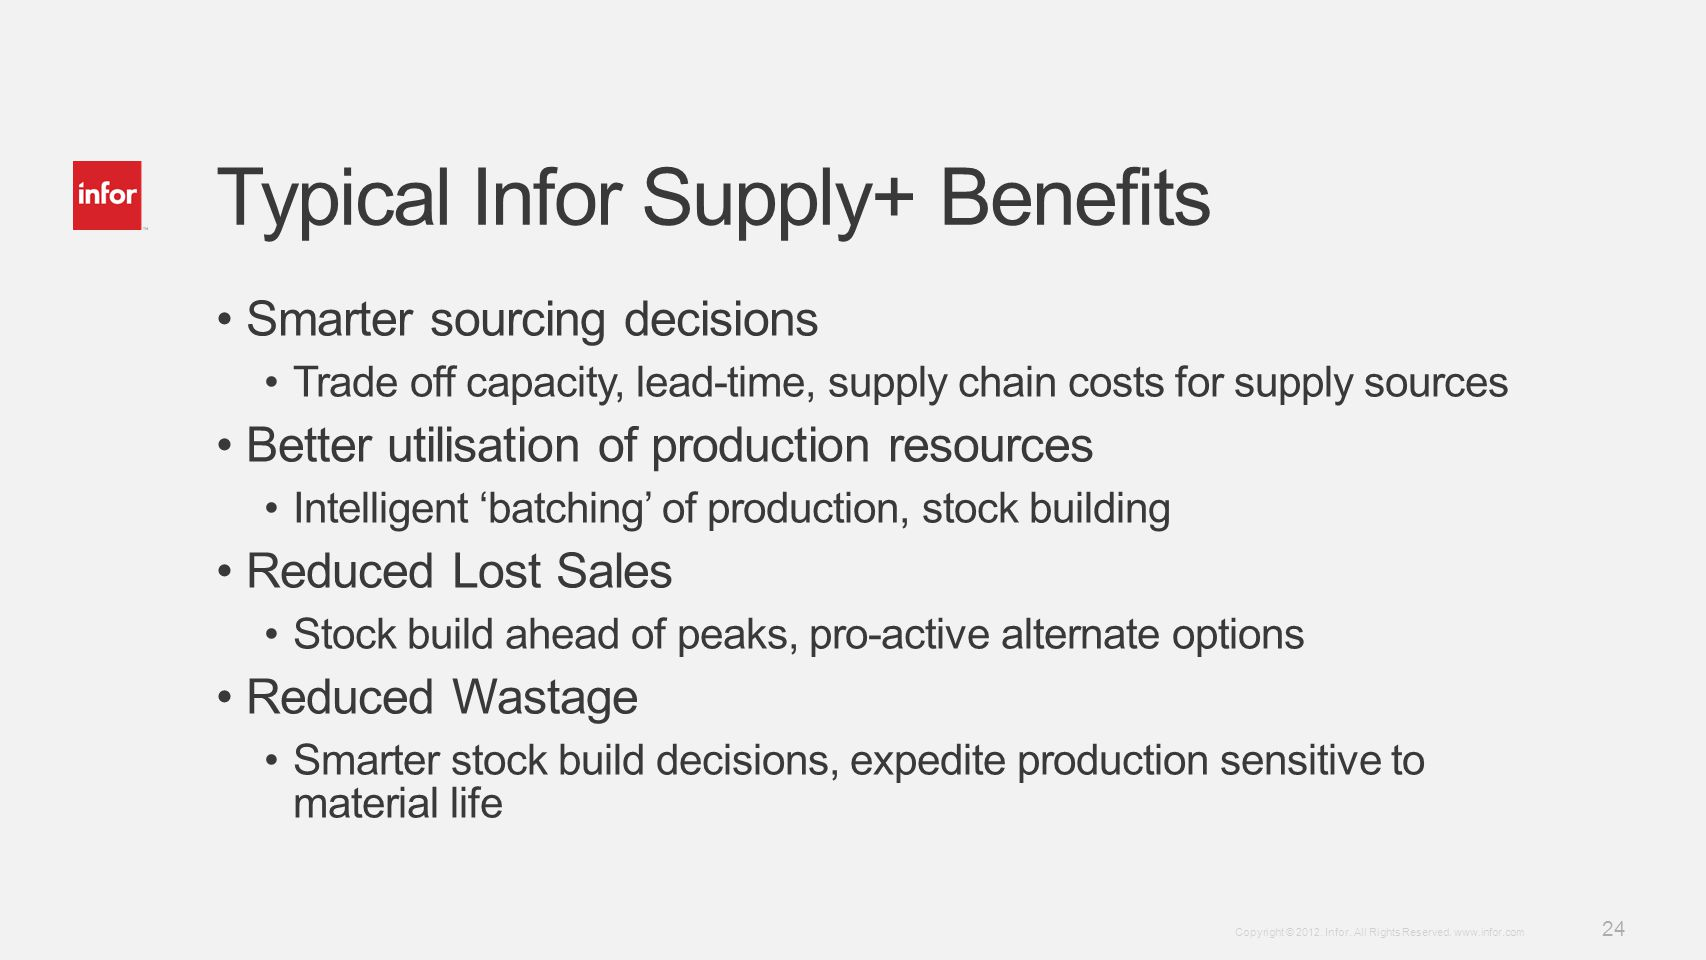 Typical Infor Supply+ Benefits